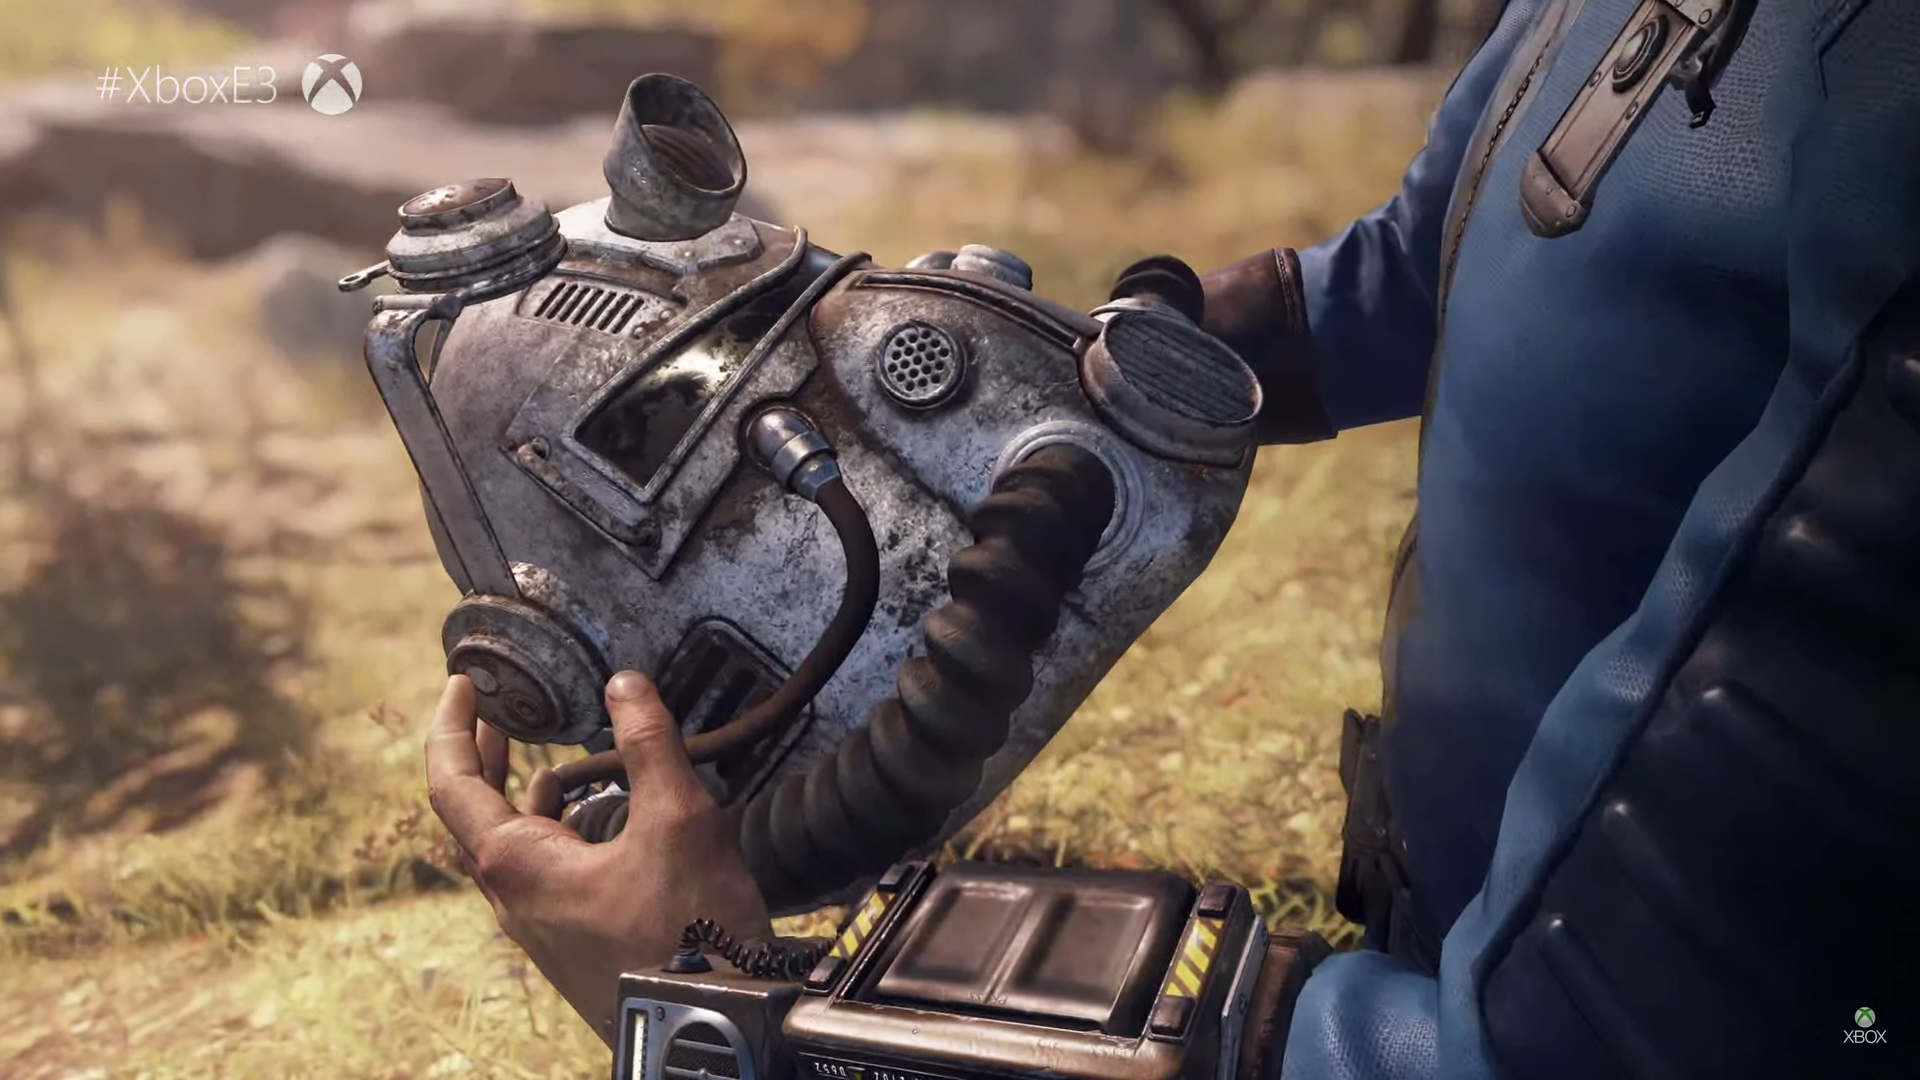 Fallout 76 is an online multiplayer game about the first ...